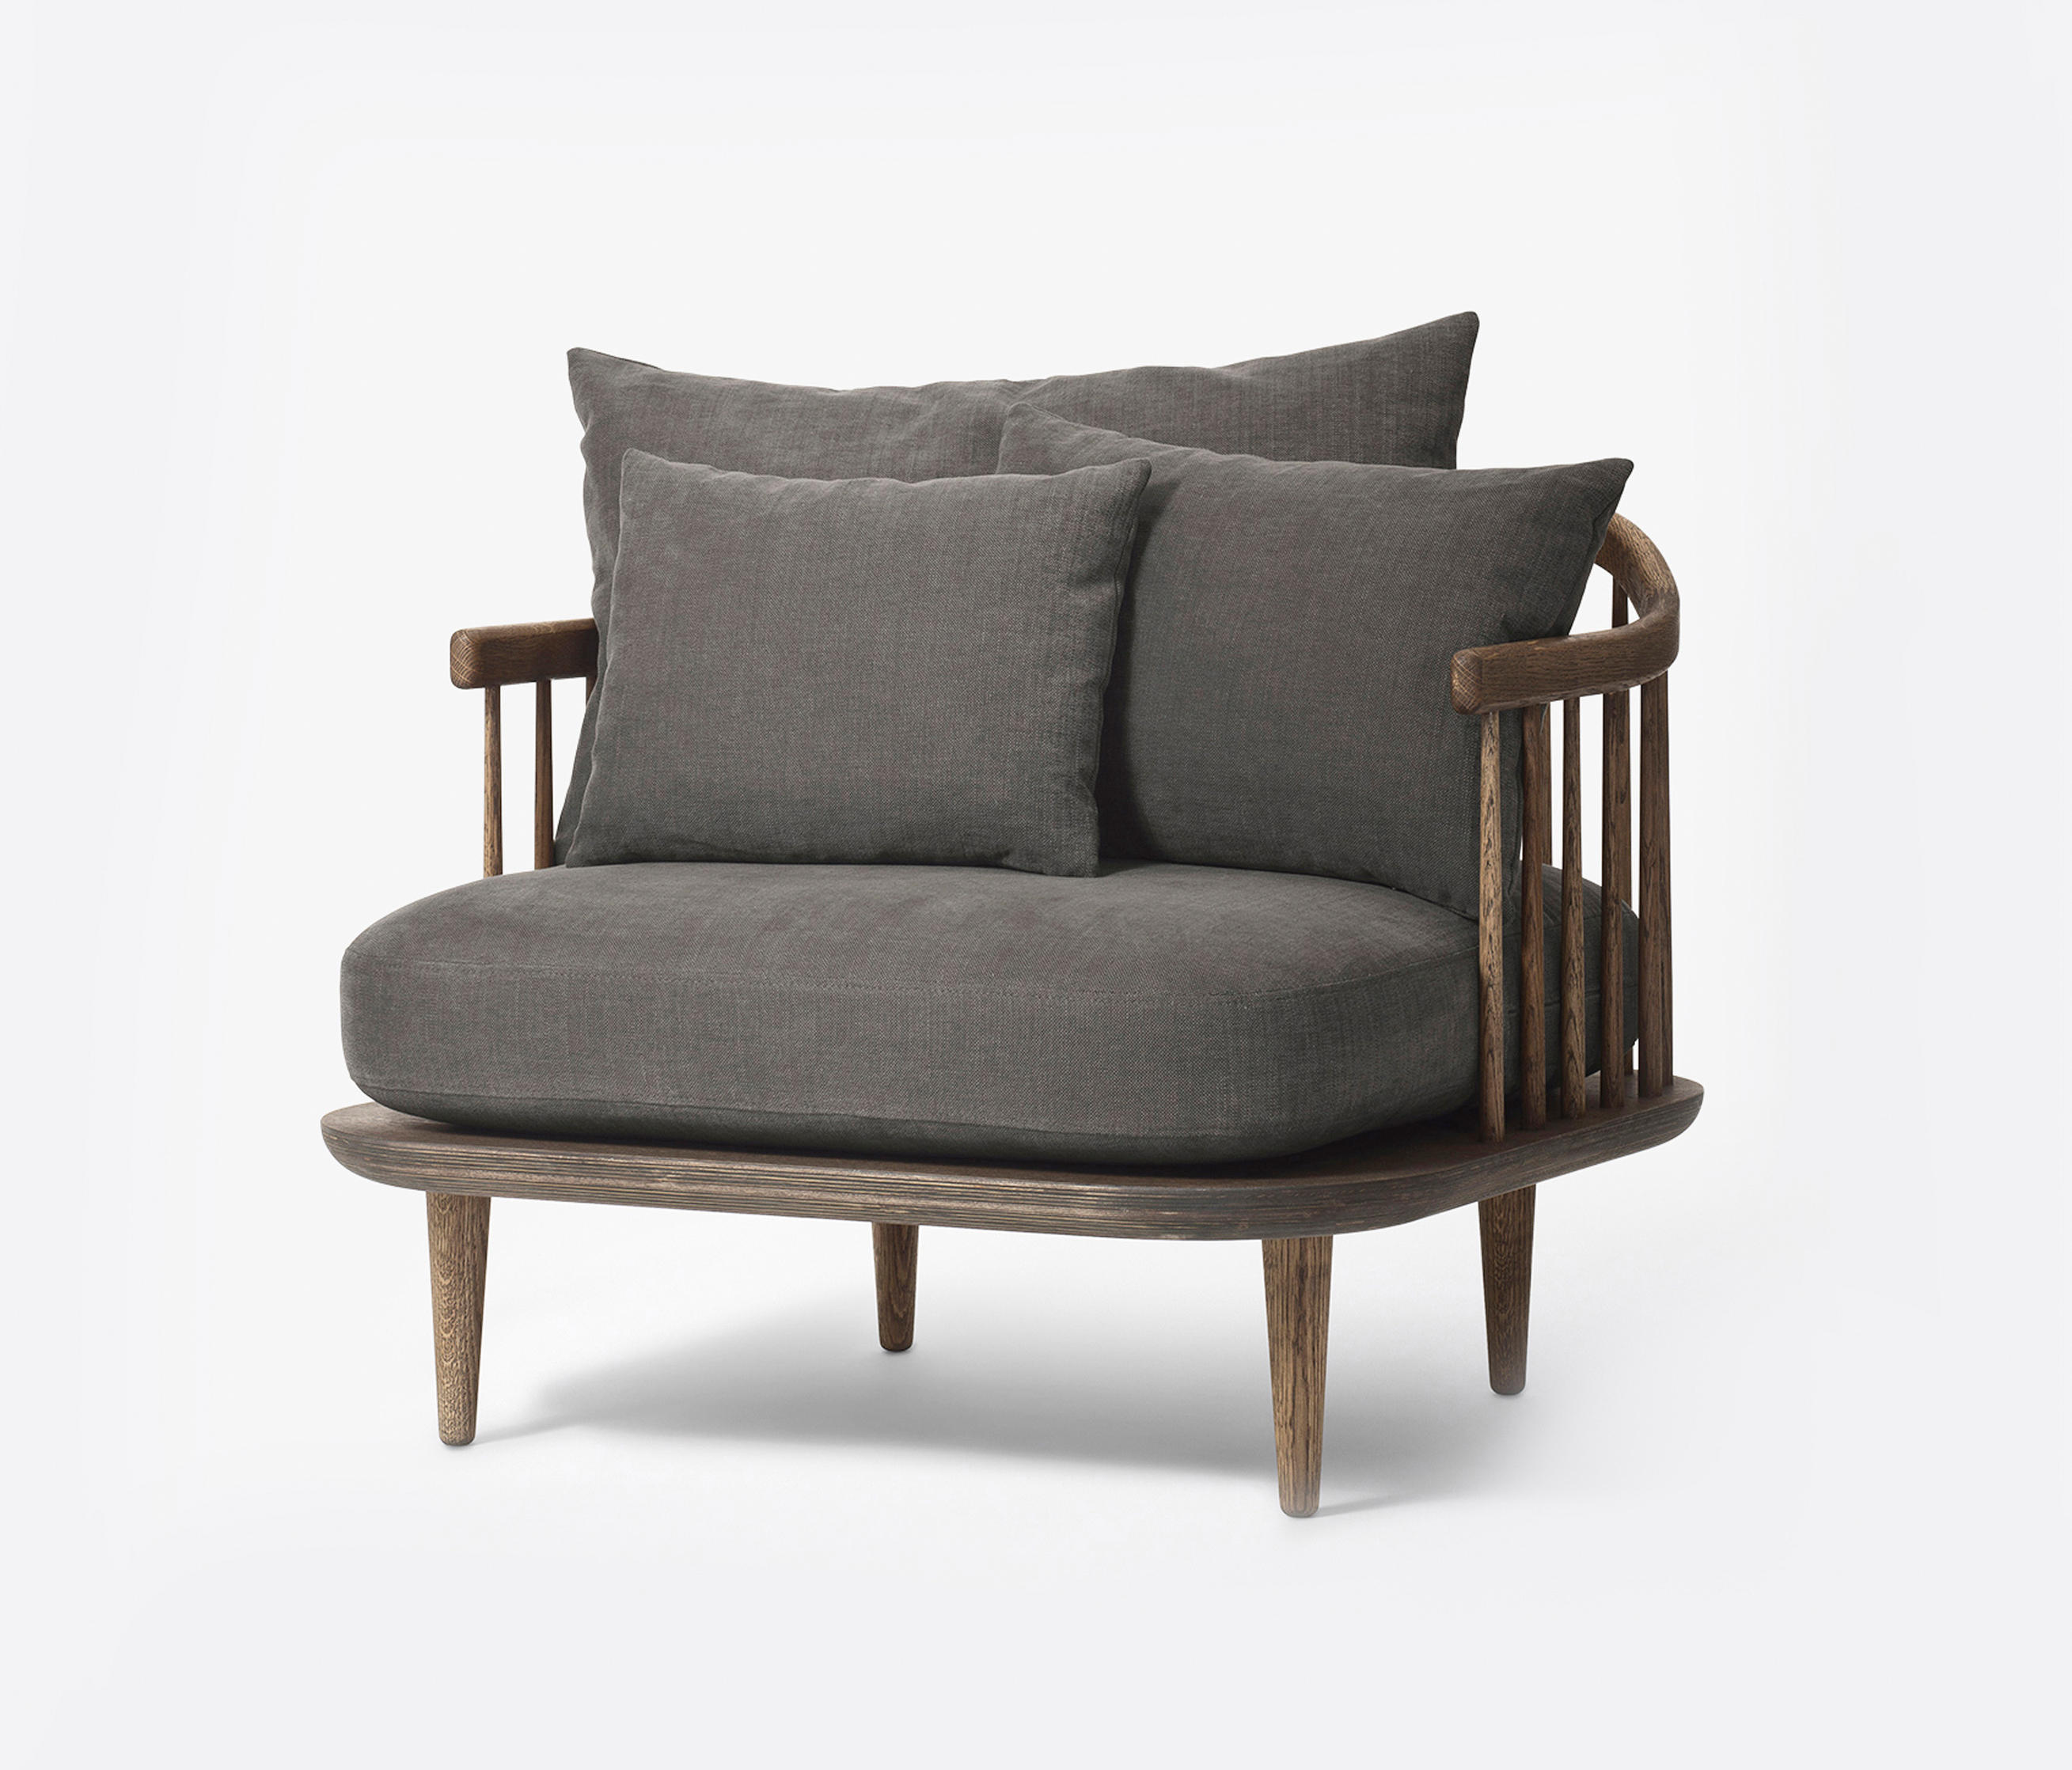 FLY CHAIR SC1 Lounge chairs from &TRADITION